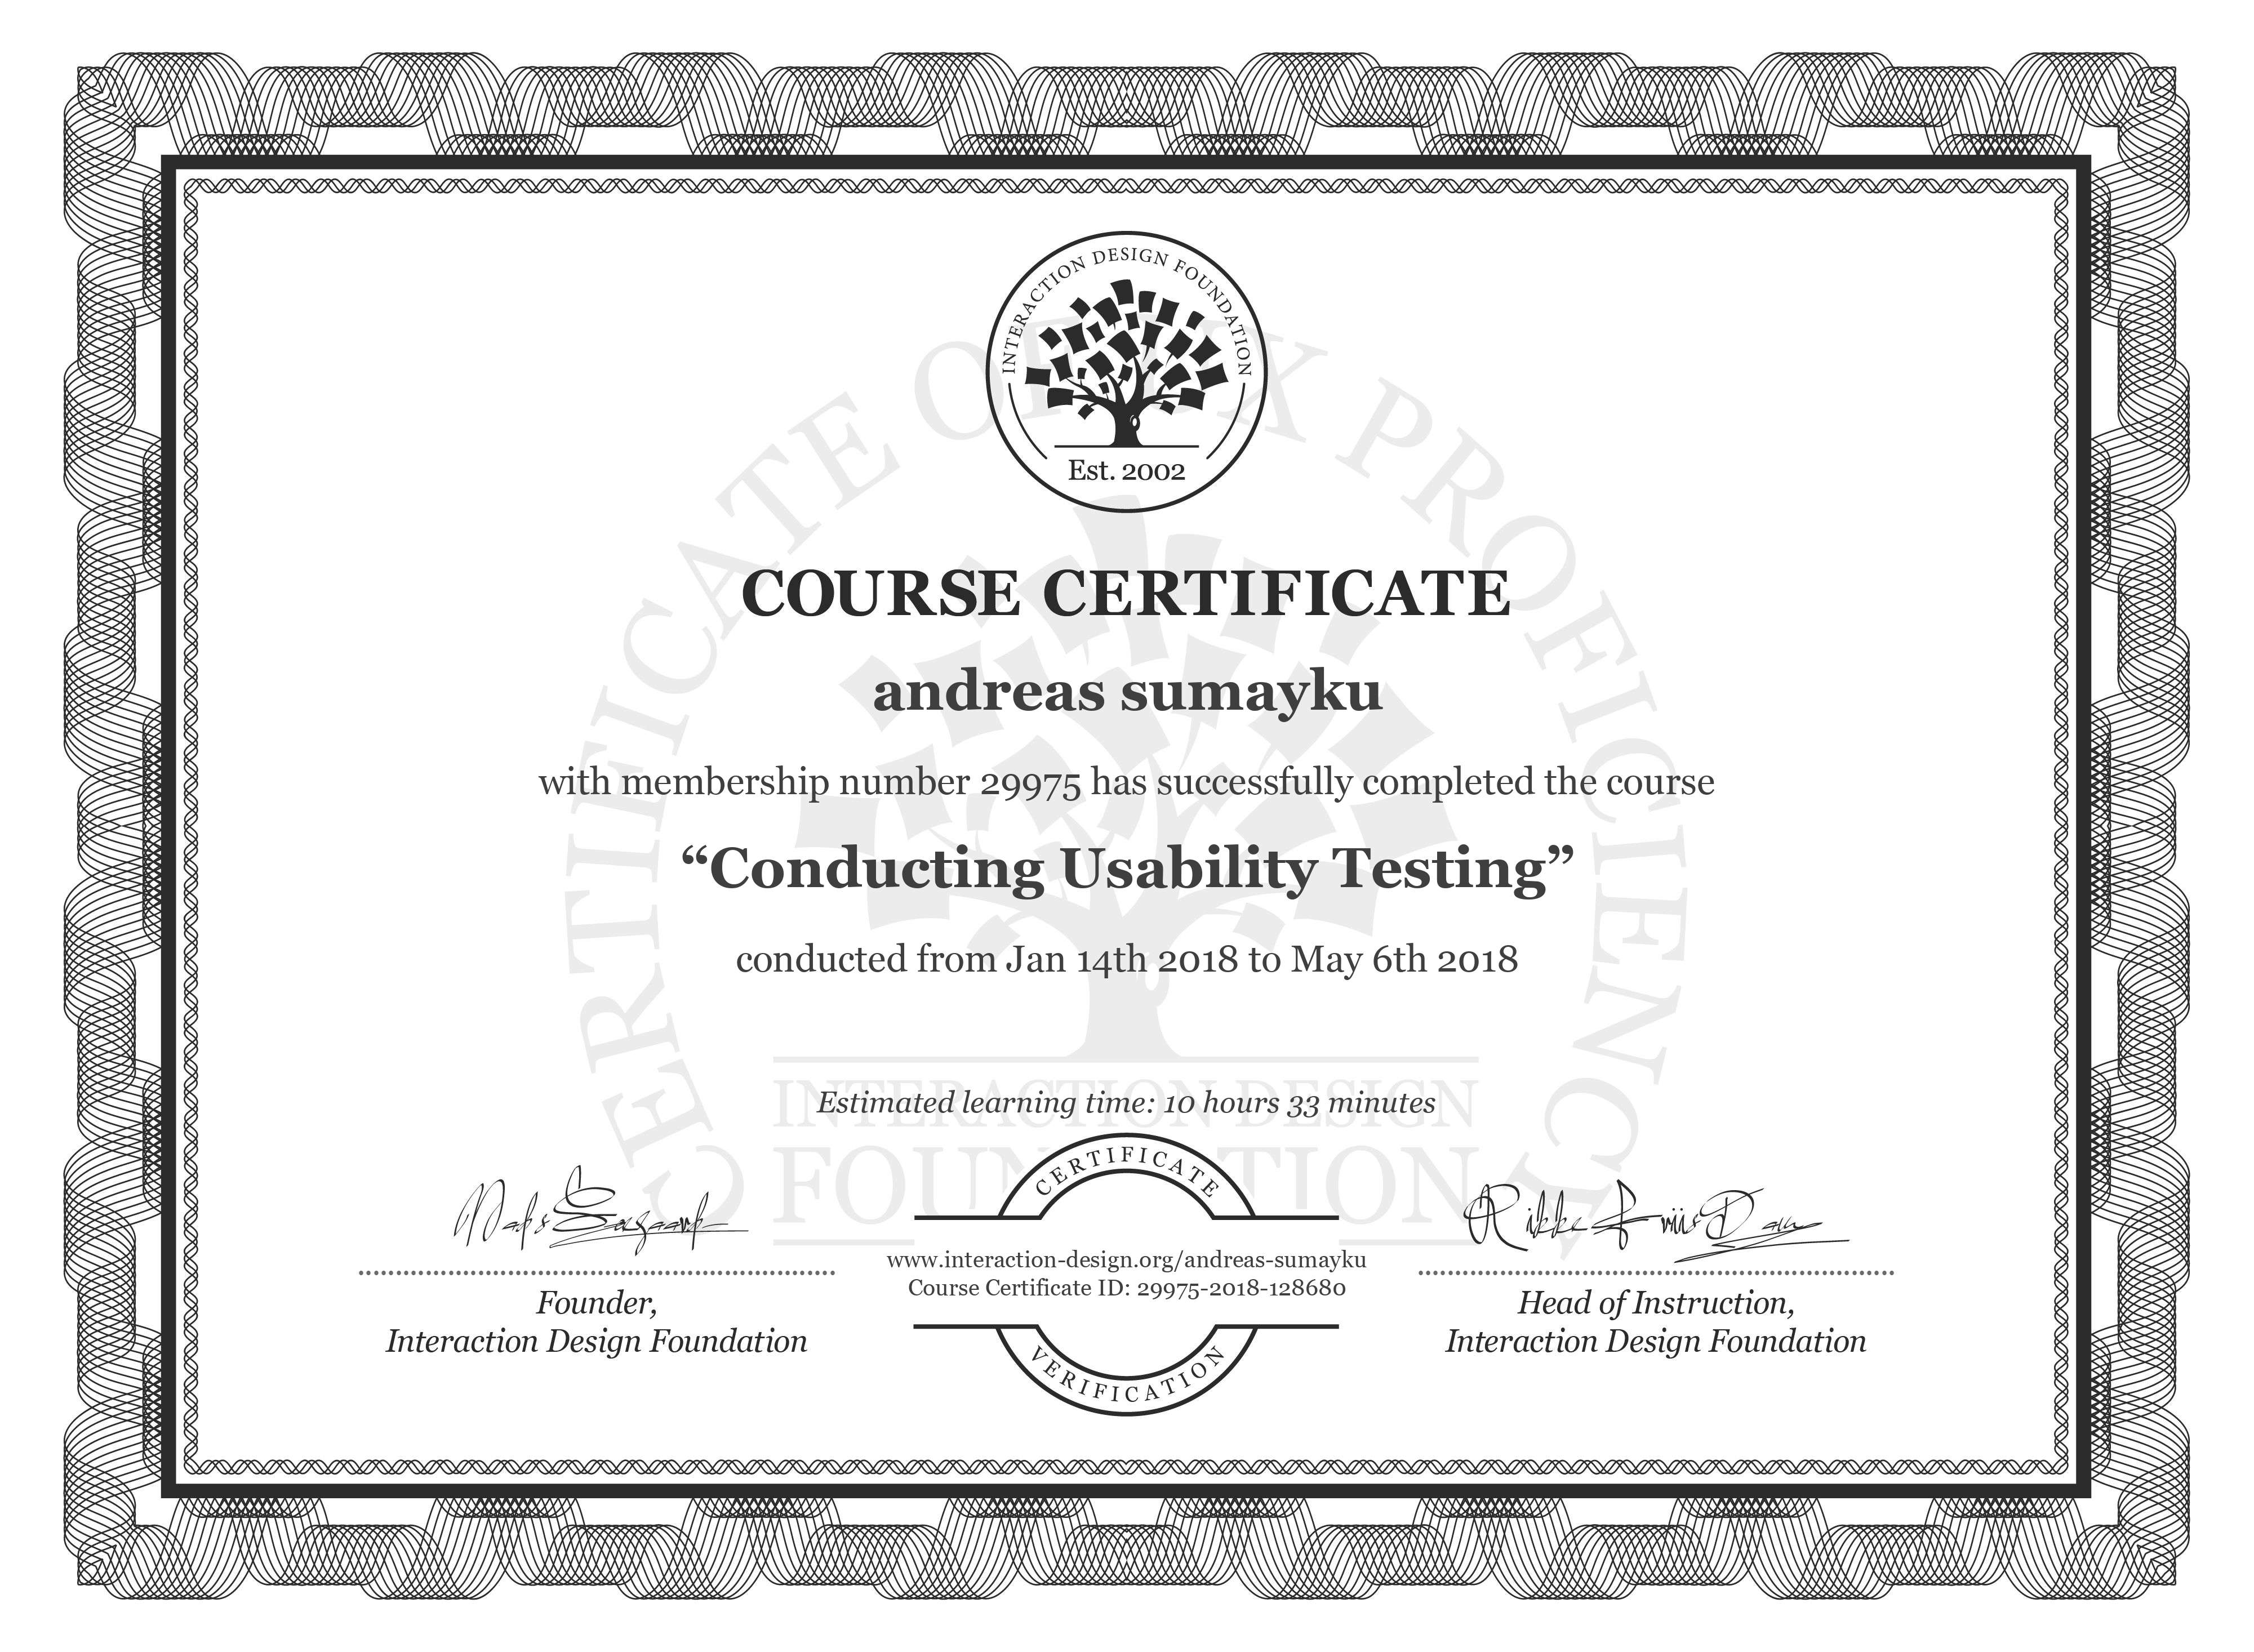 andreas sumayku: Course Certificate - Conducting Usability Testing